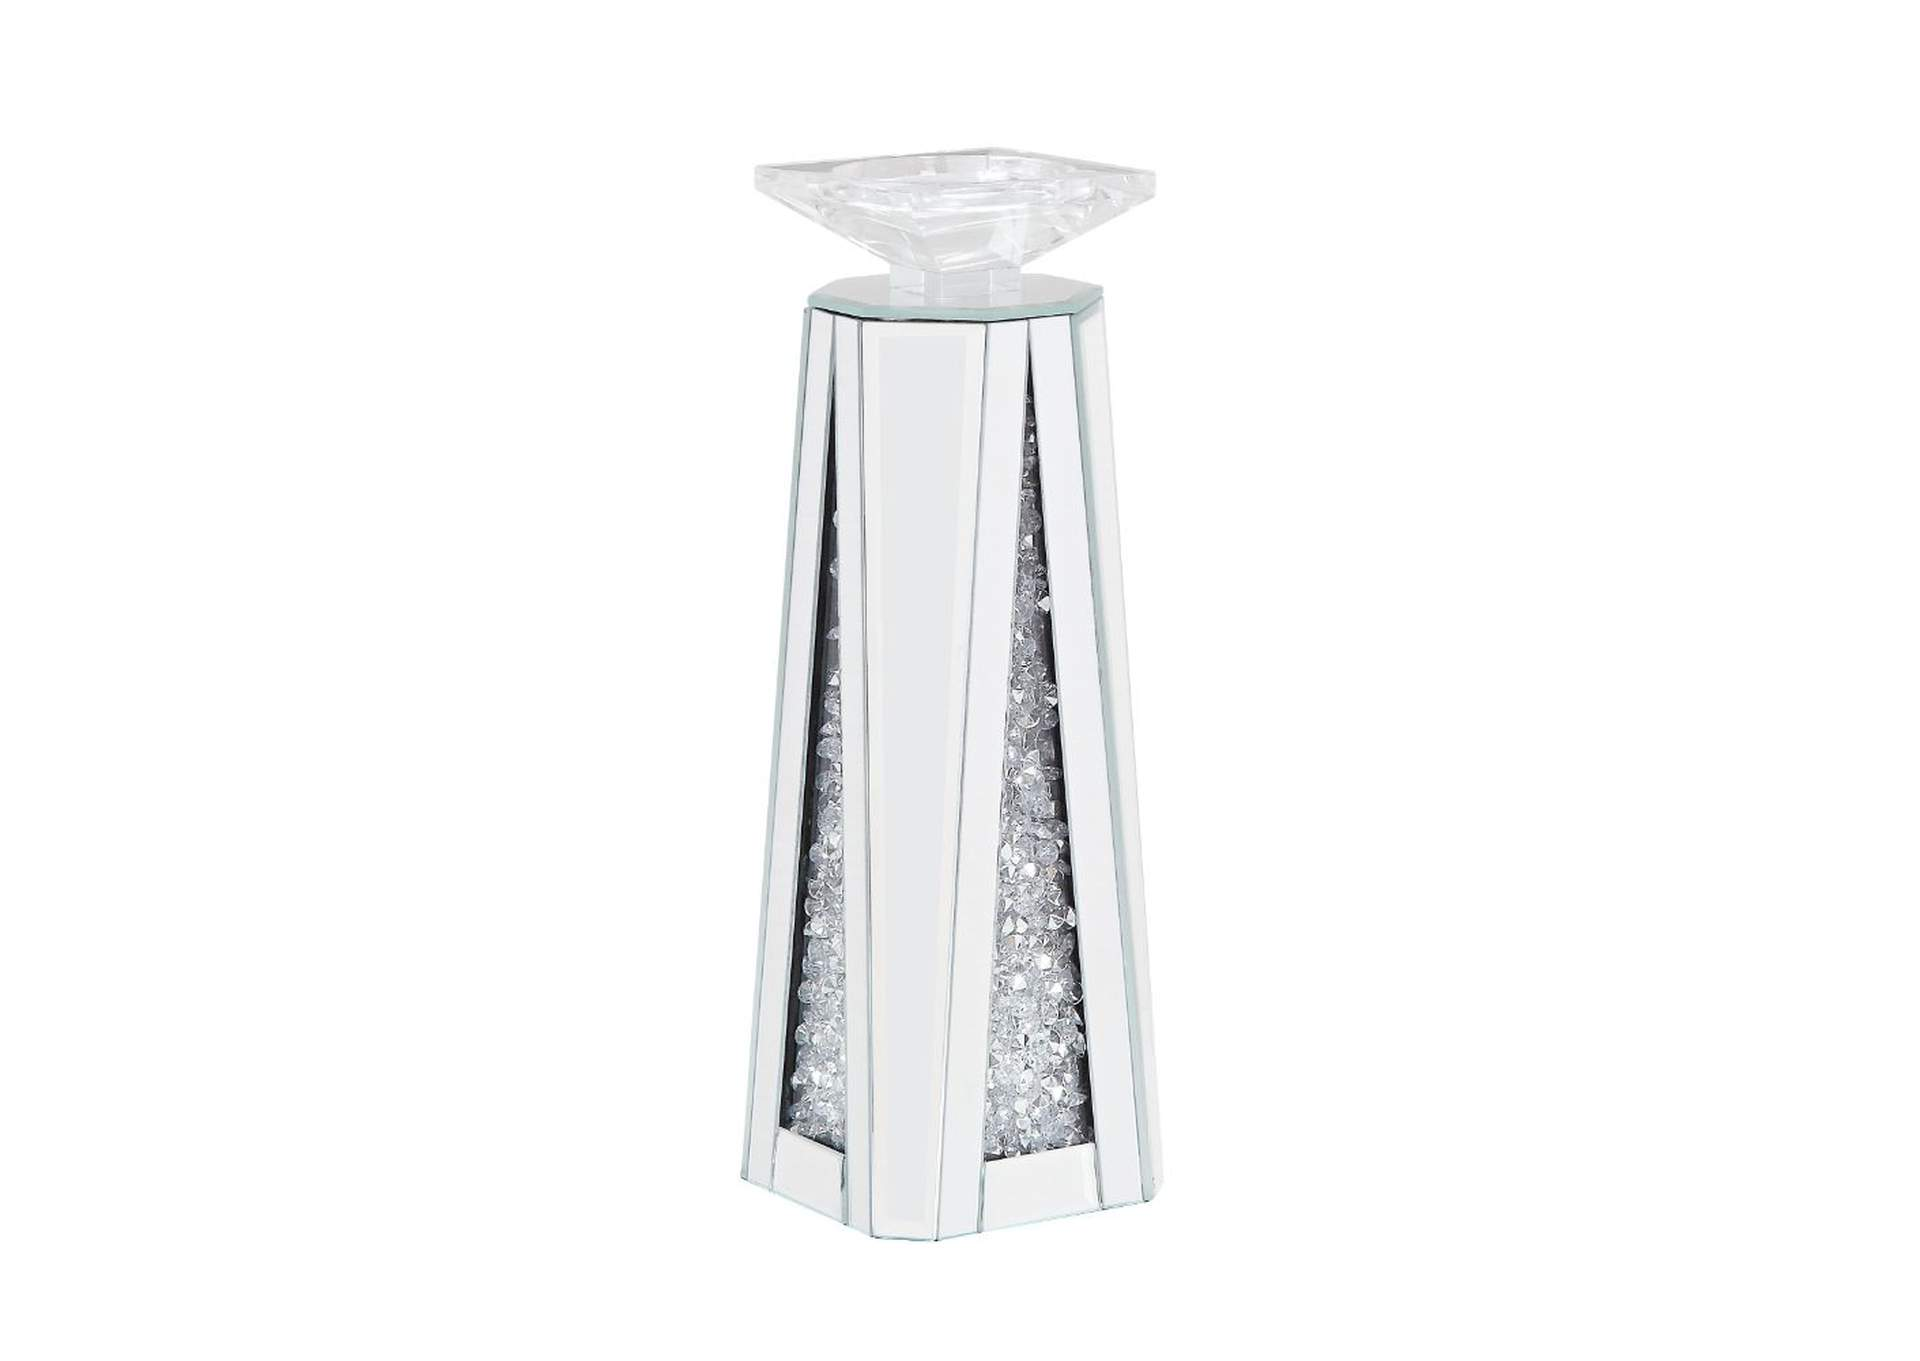 Nowles Mirrored & Faux Stones Accent Candleholder,Acme